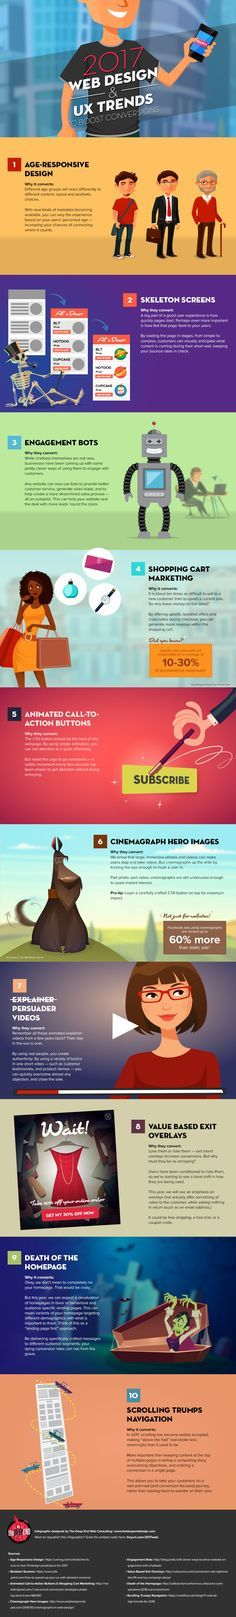 10 Web Design Trends That Will Rock 2017 #Infographic